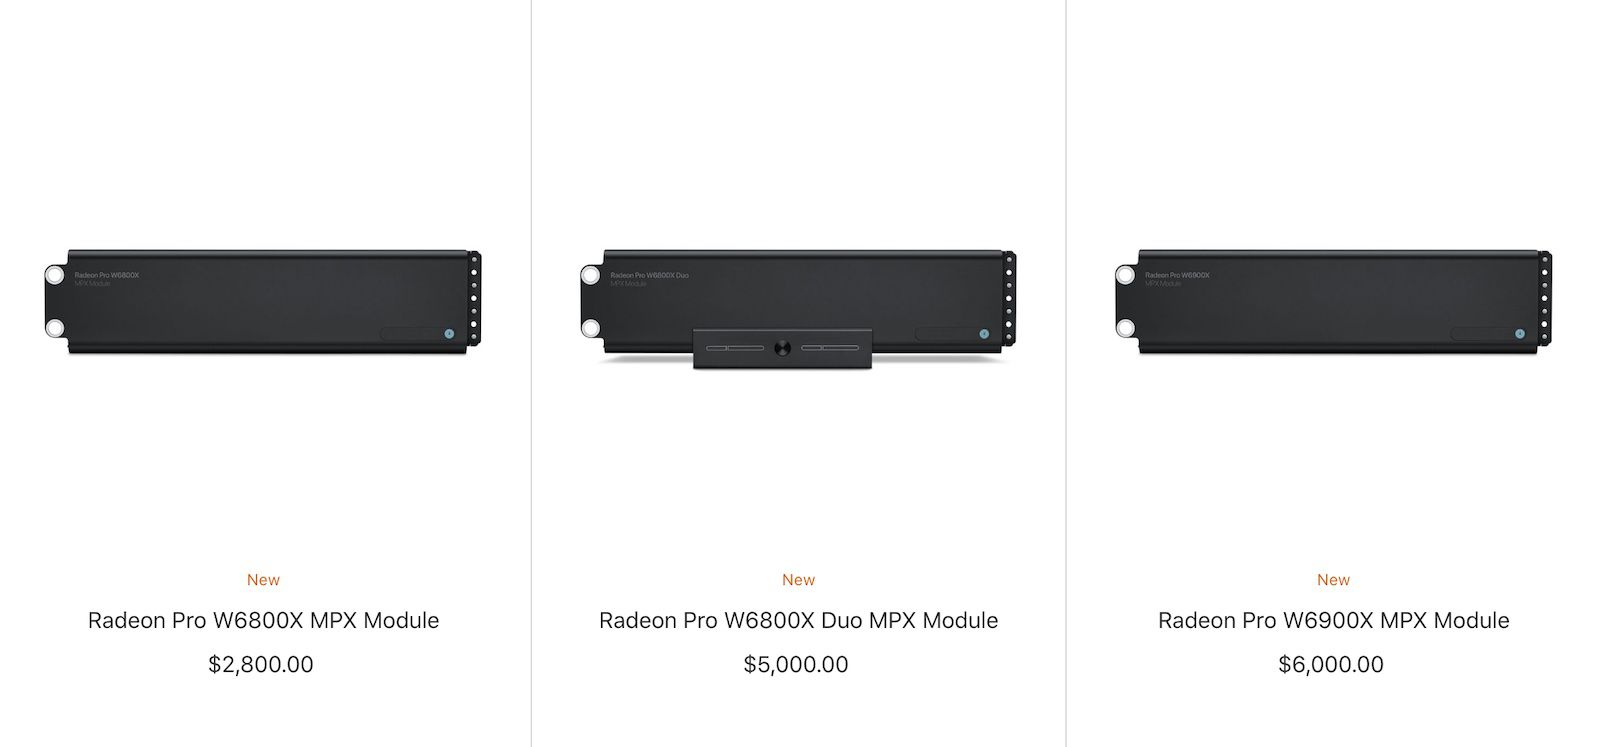 Mac Pro's New Radeon Pro W6000 Graphics Modules Now Available for Standalone Purchase